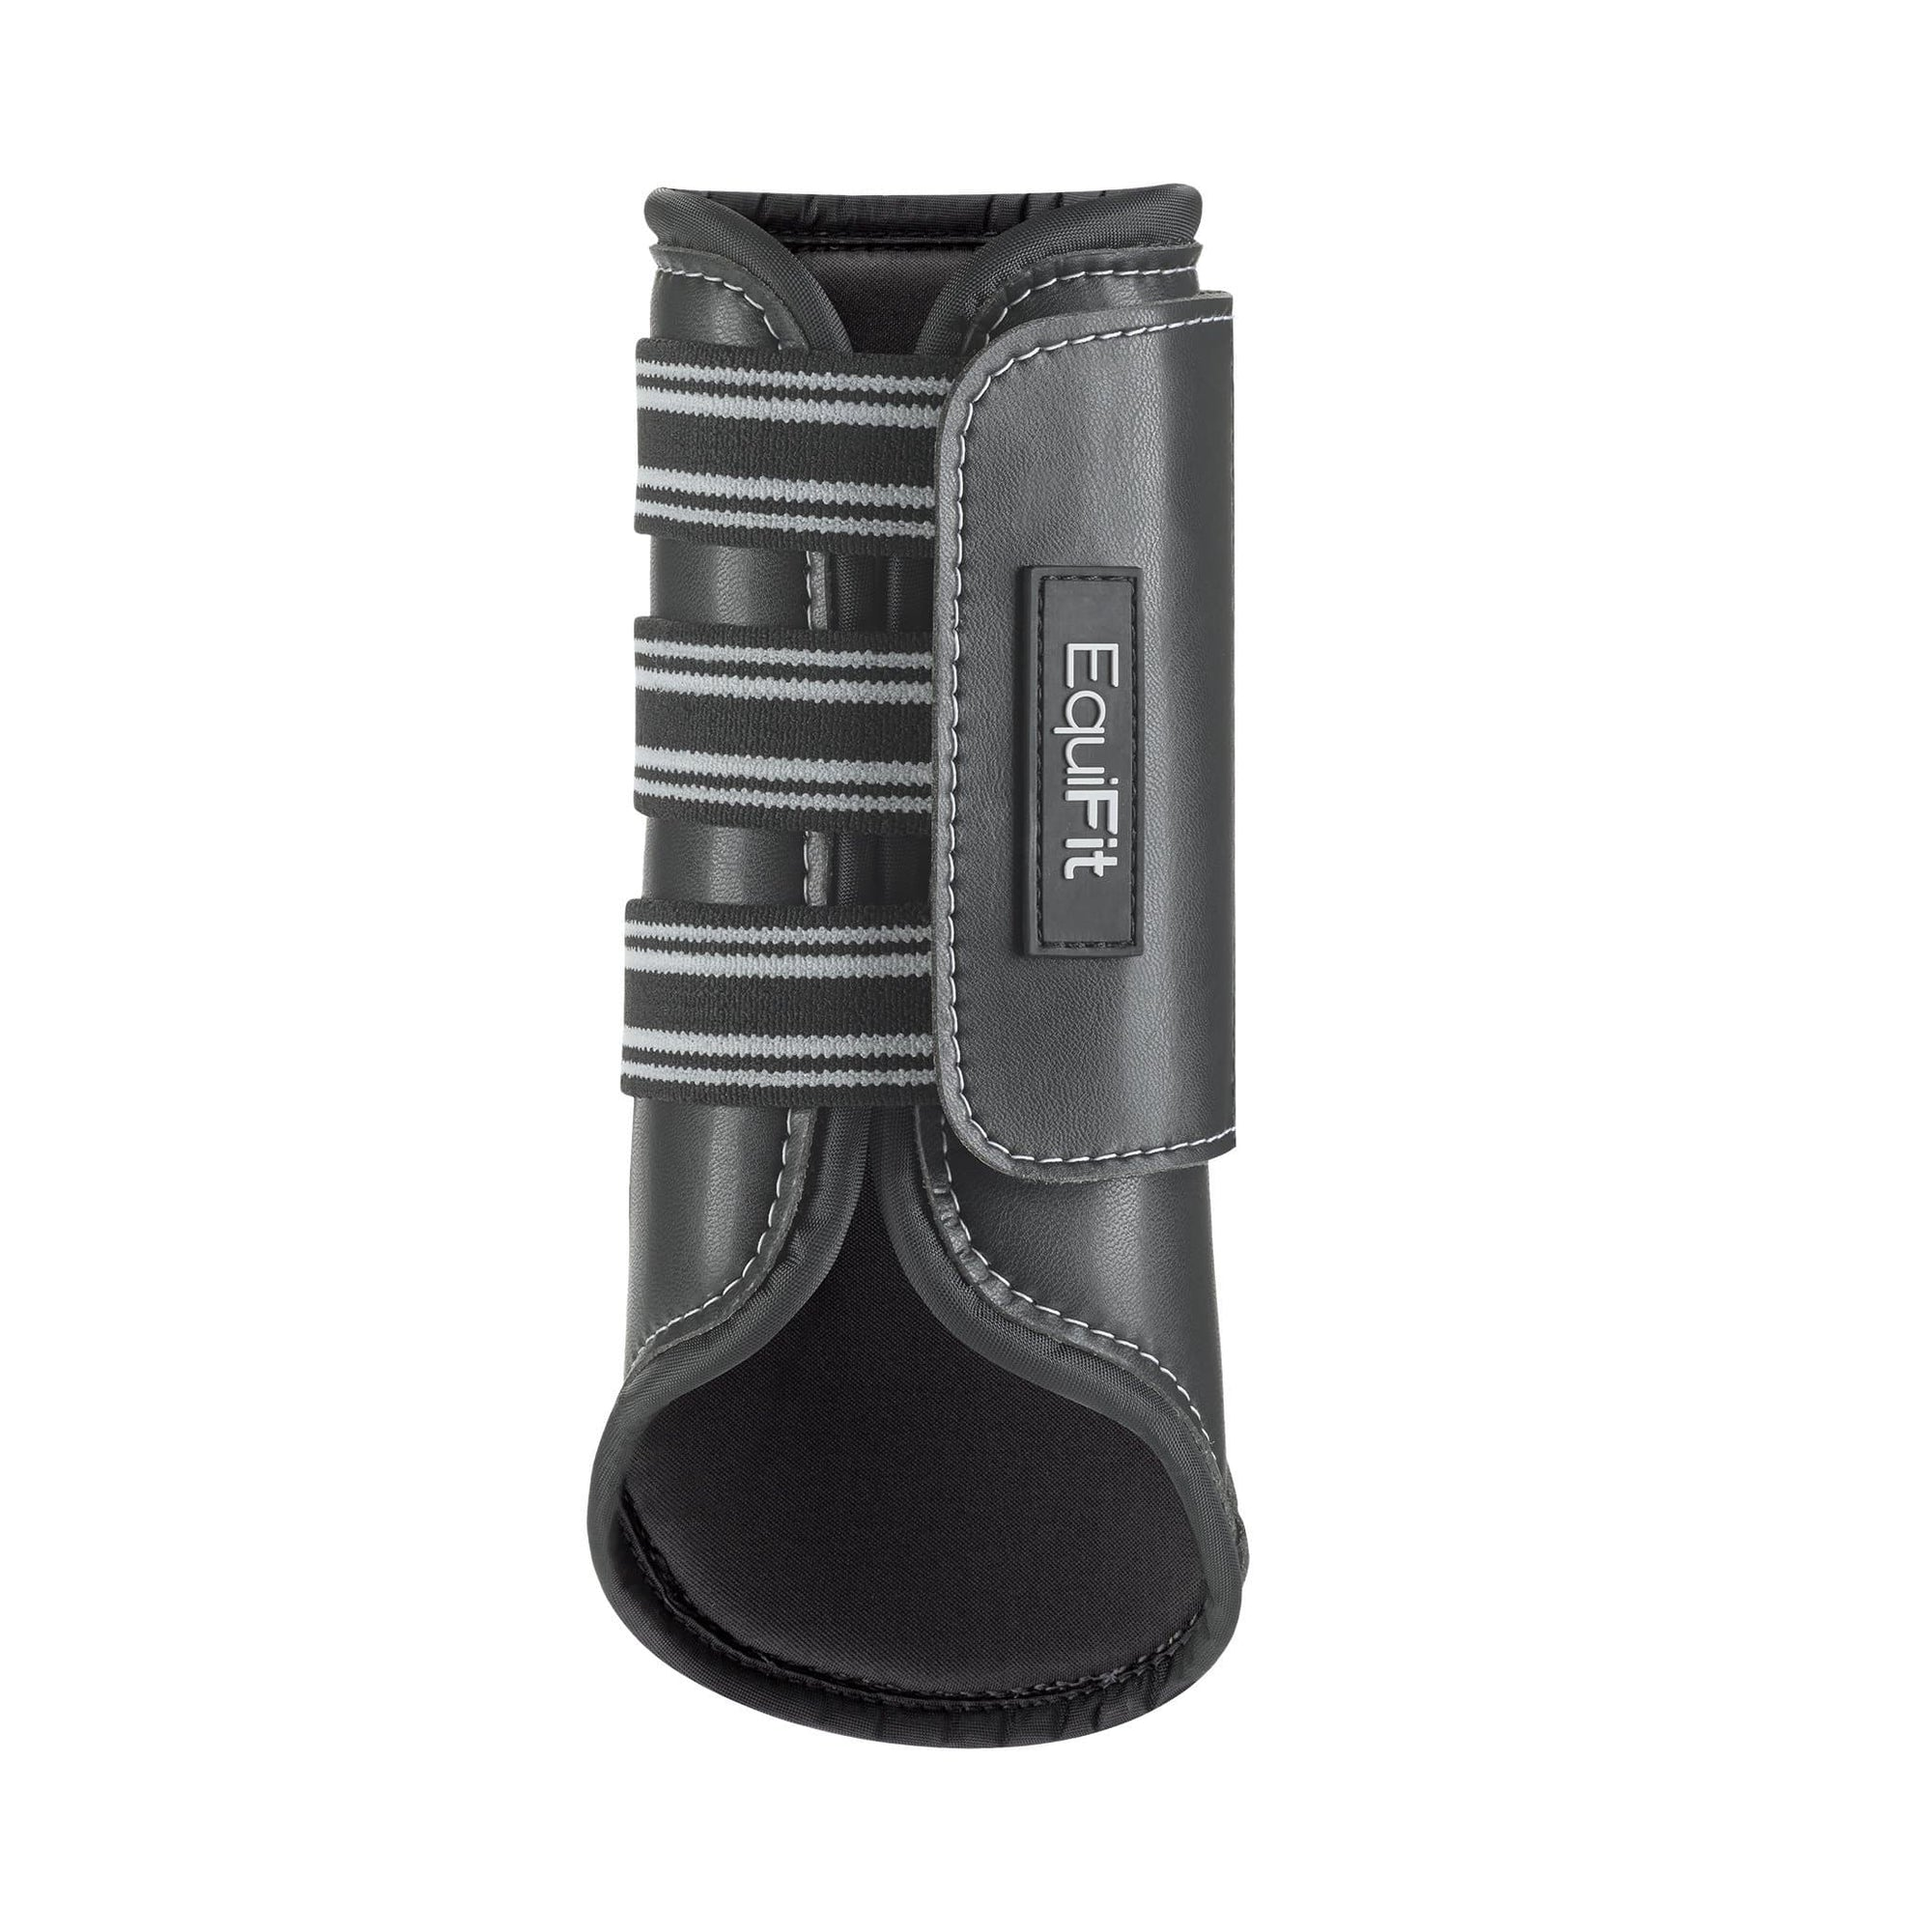 MultiTeq™ Front Boot